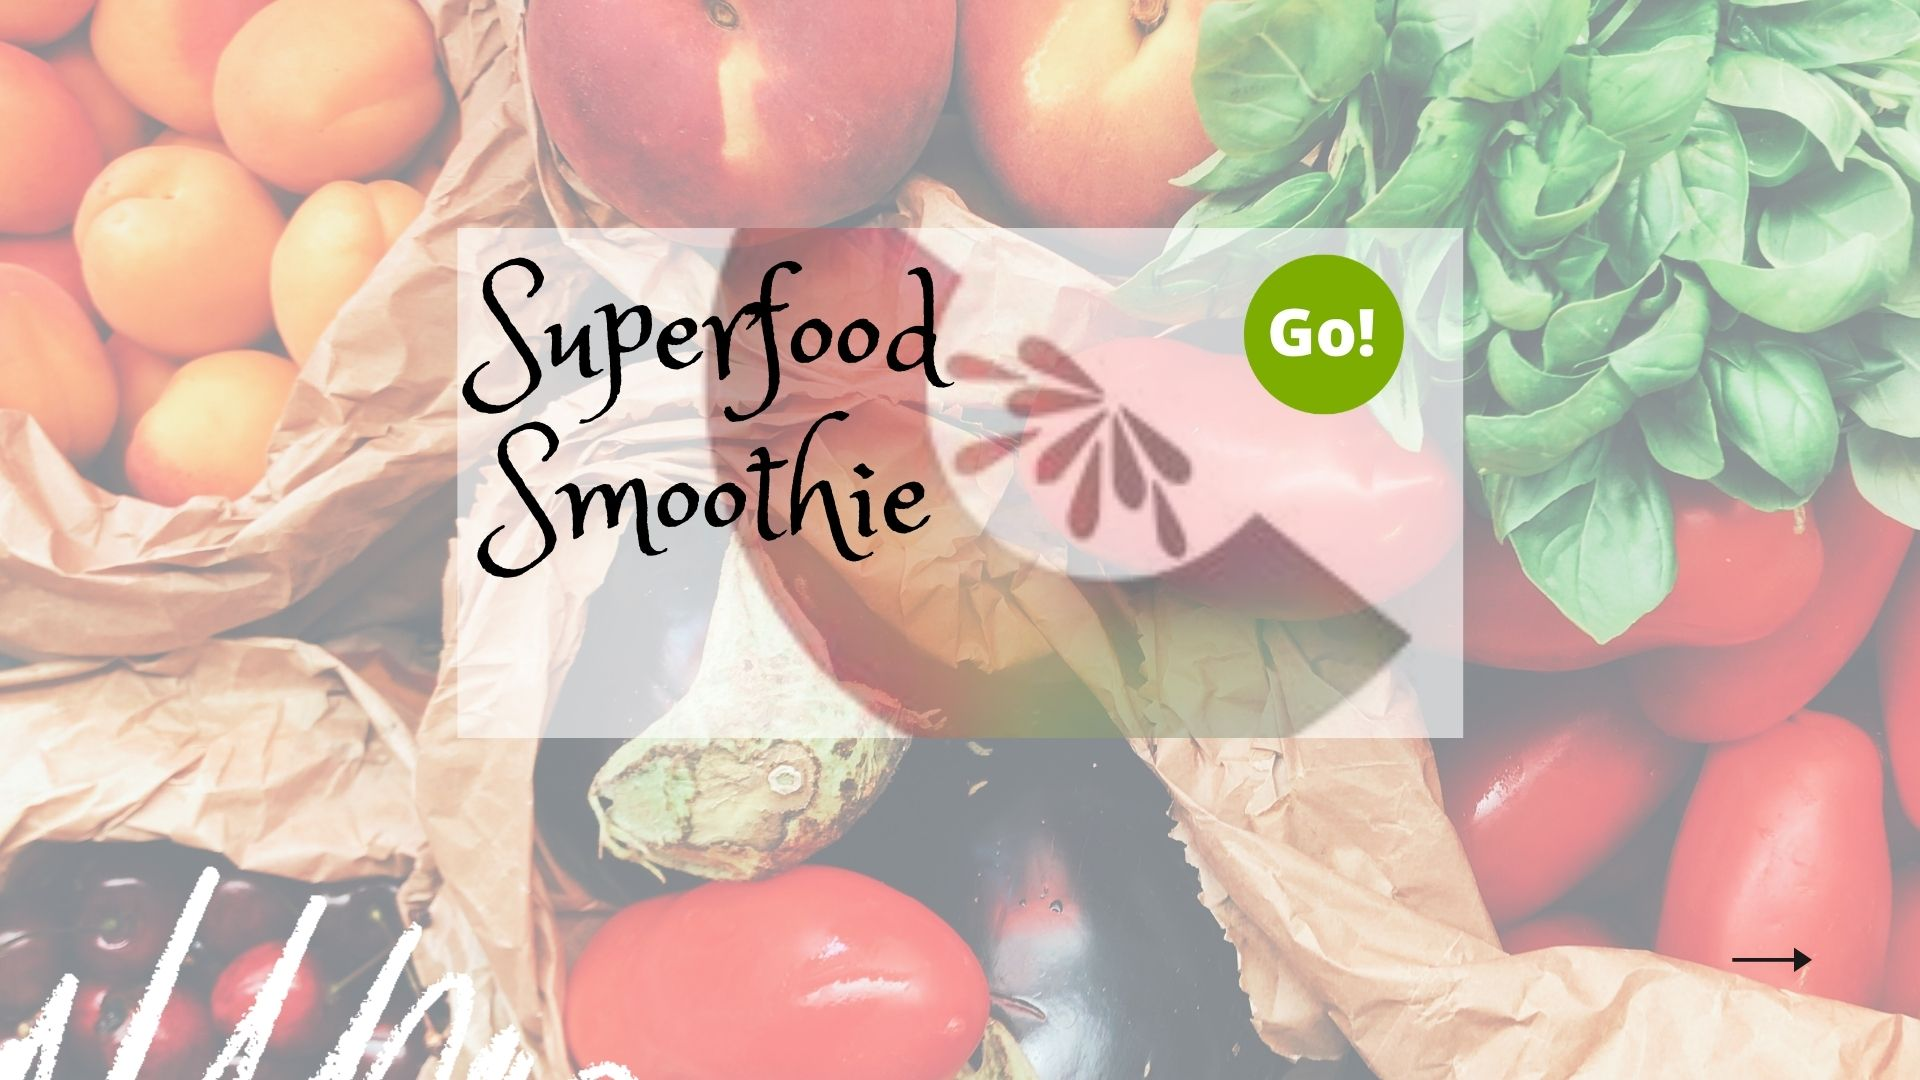 Make A Superfood Smoothie With Haley – +3 Prize Points